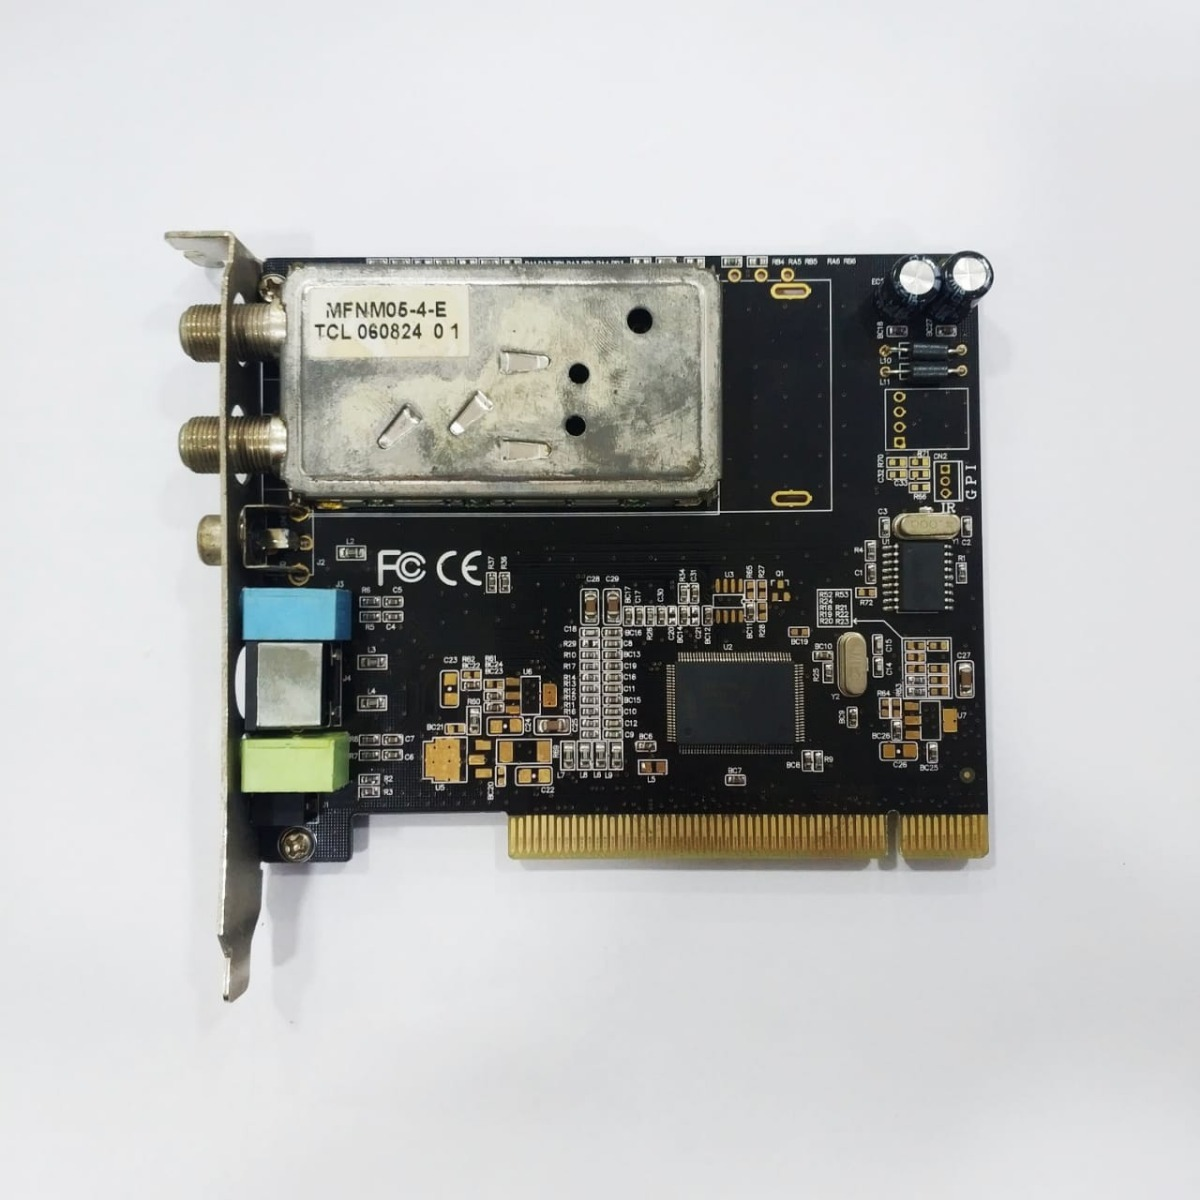 TV TUNER PCI CARD PHILIPS 7130 DOWNLOAD DRIVER